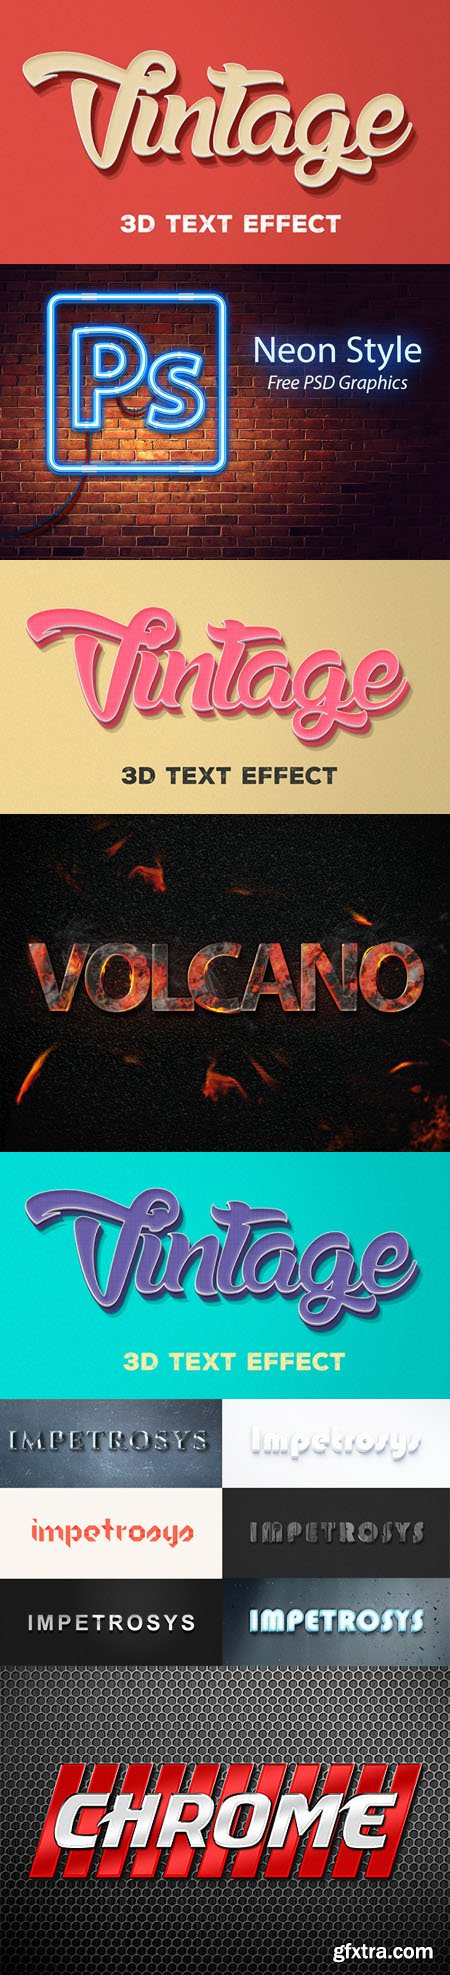 Photoshop Text Effects - Neon, 3D Vintage, Burning, Chrome and others